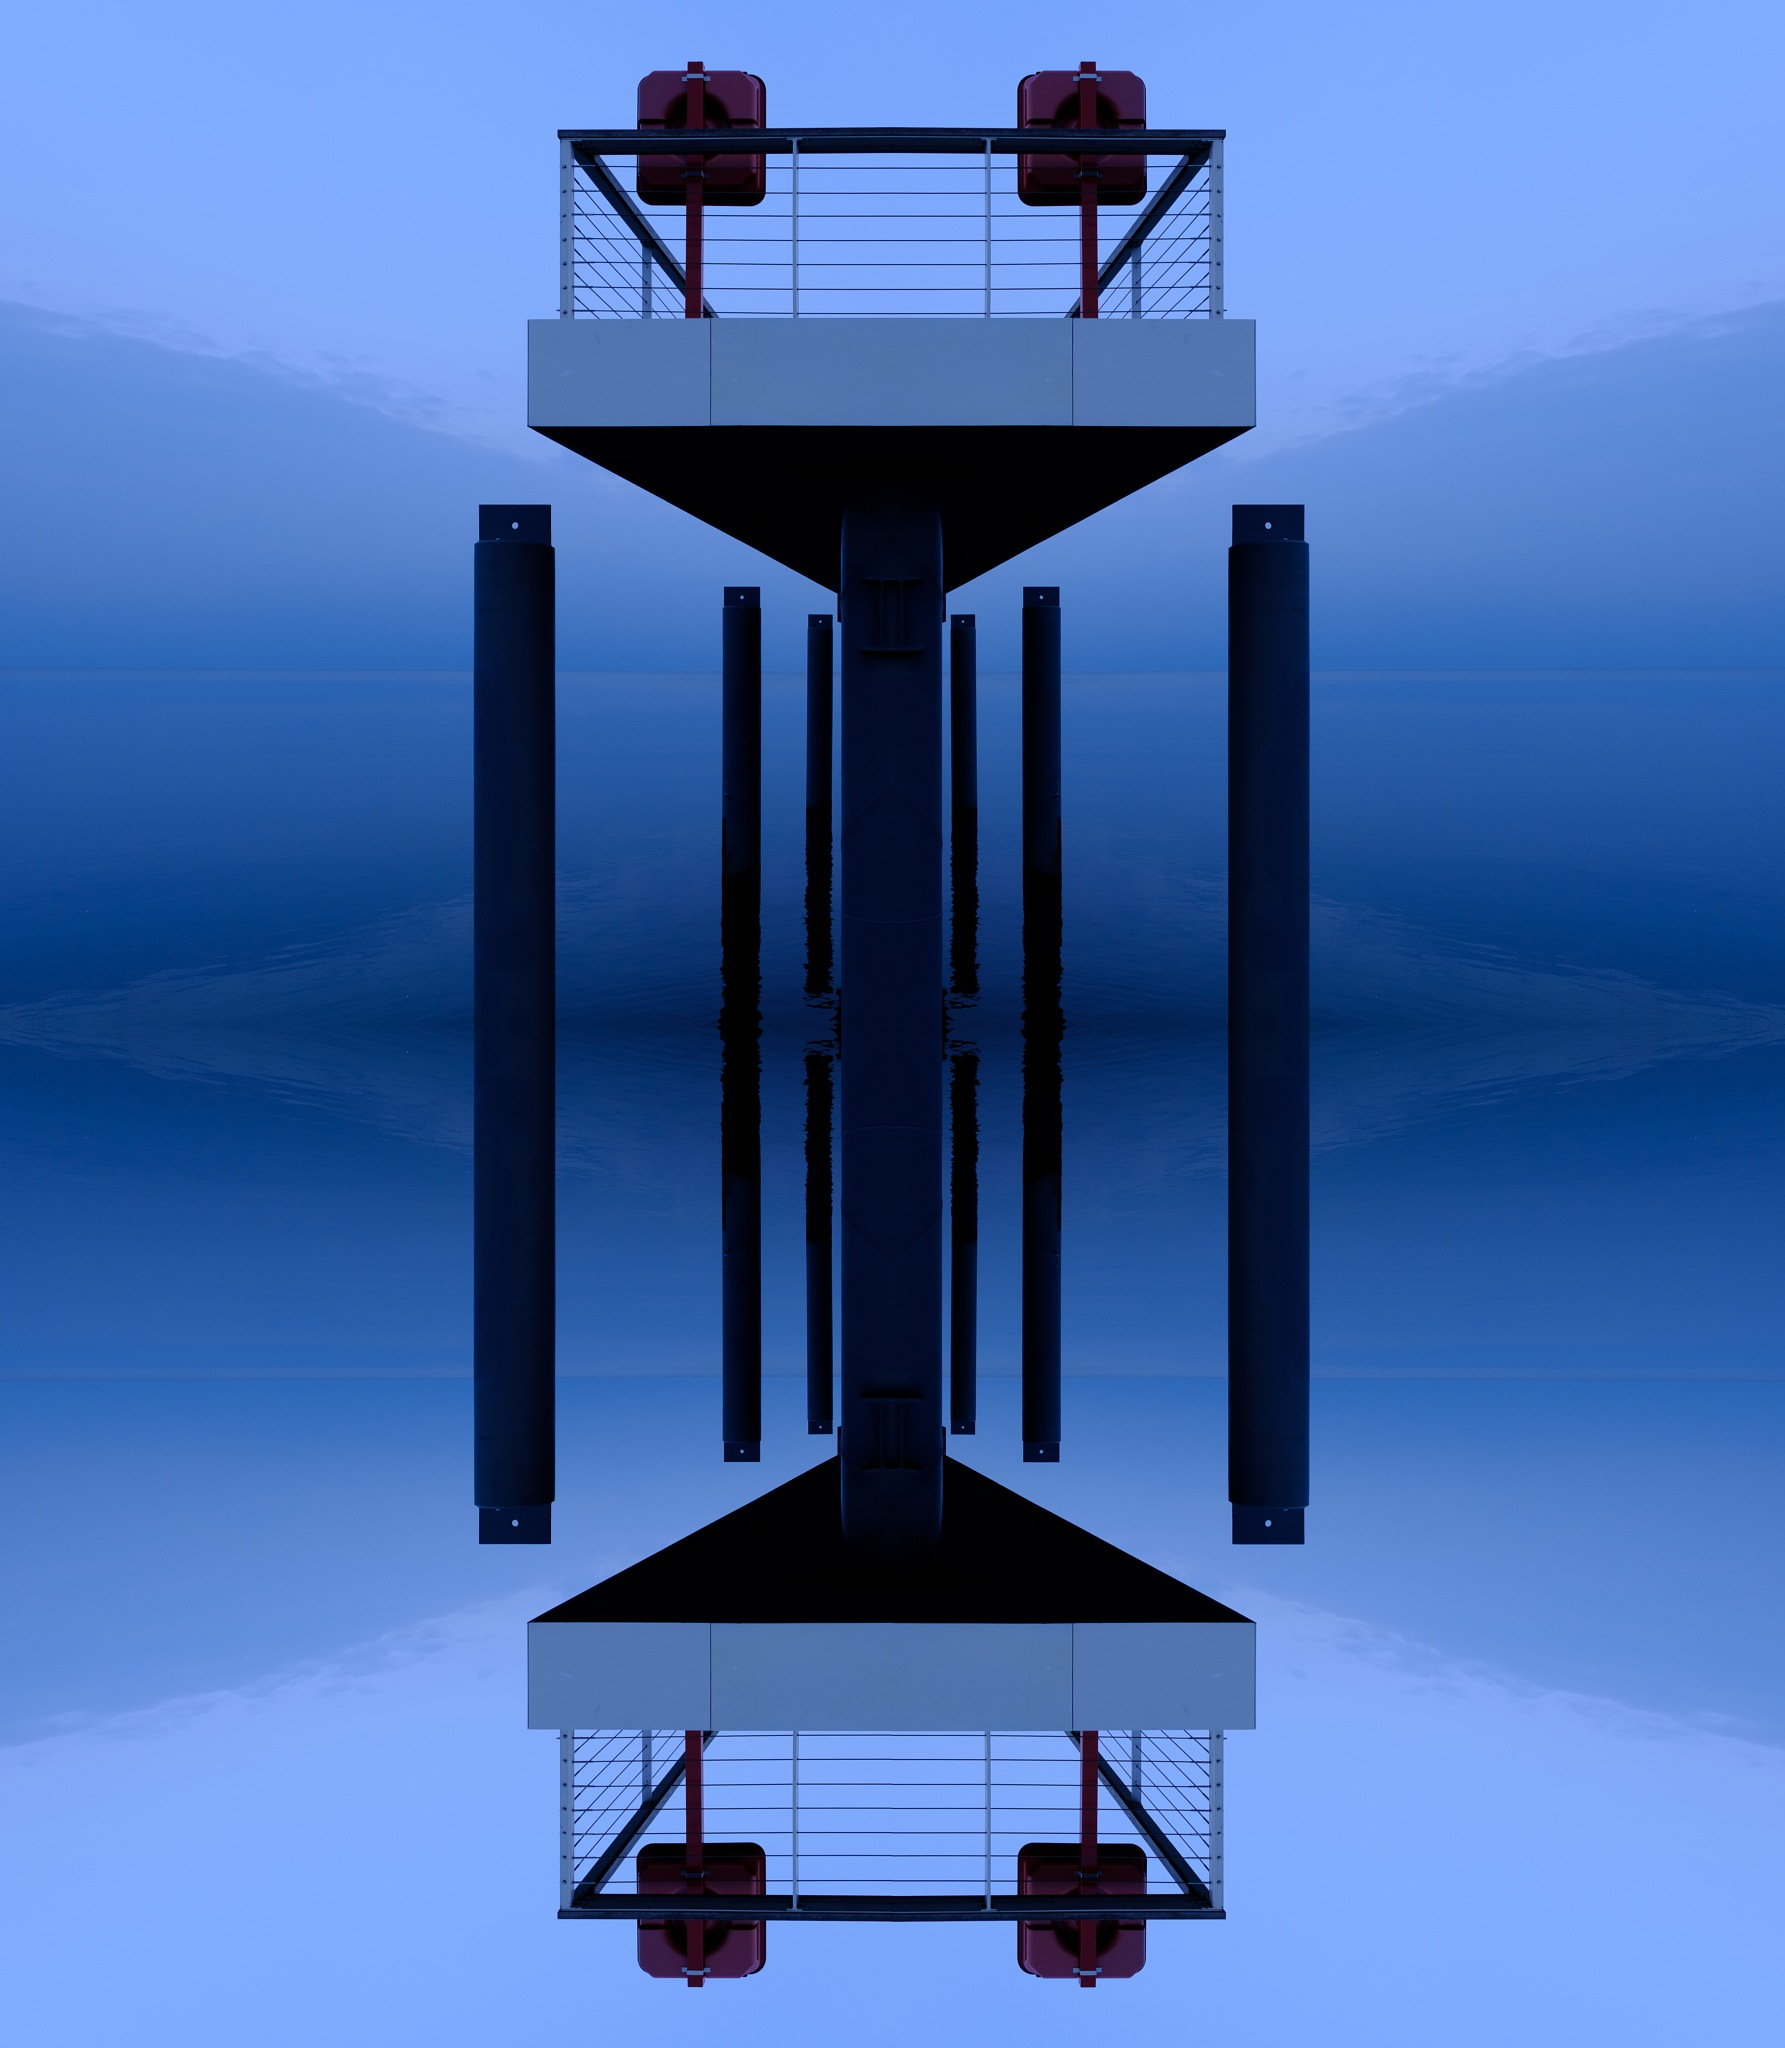 mirrorpier by Marcus Rembold